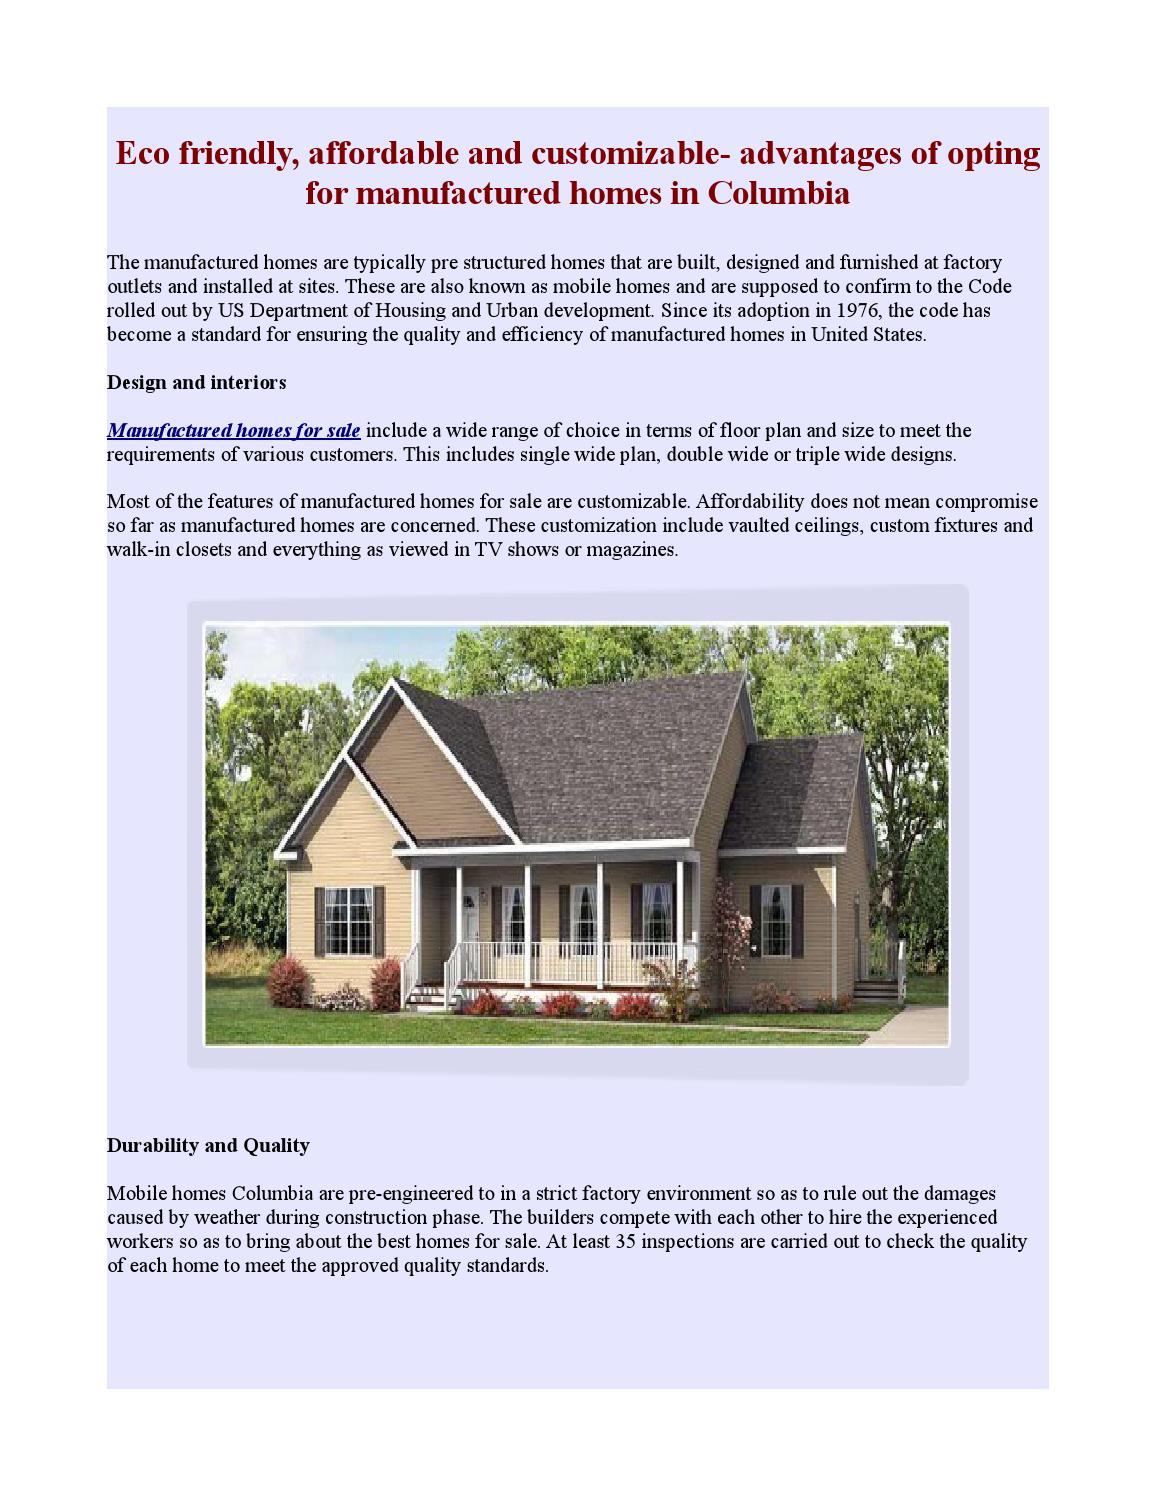 Advantages of manufactured homes by David Fautley - issuu on mobile home ranch, mobile home offices, mobile home garages, mobile home luxury, mobile home lofts,